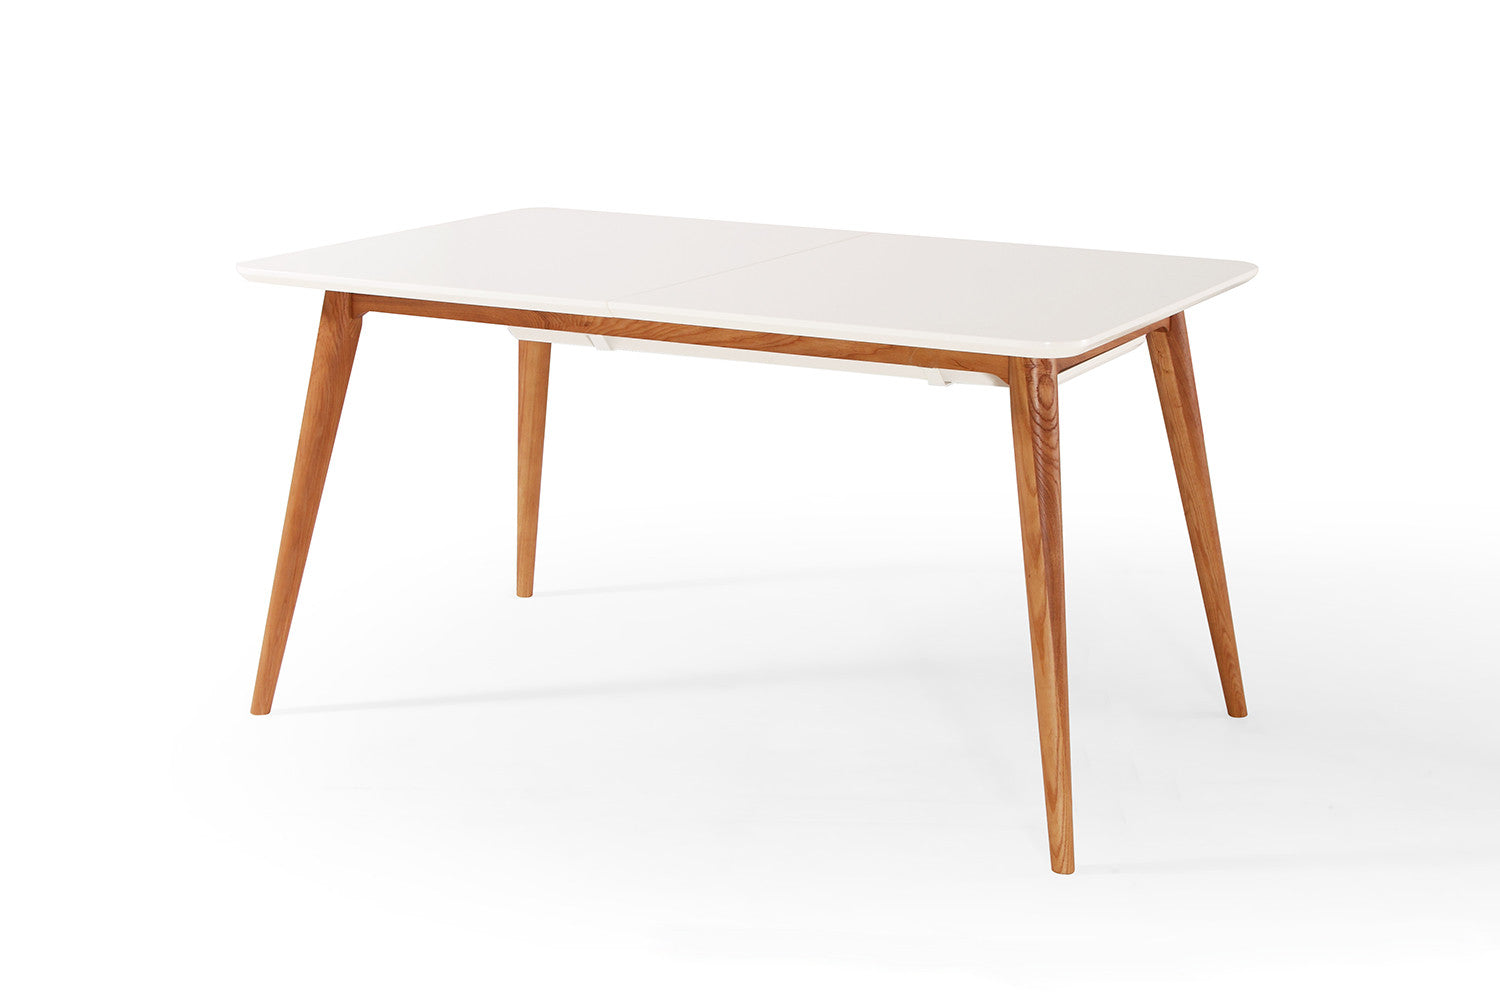 Table de salle manger extensible scandinave wyna dewarens for Table extensible salle a manger